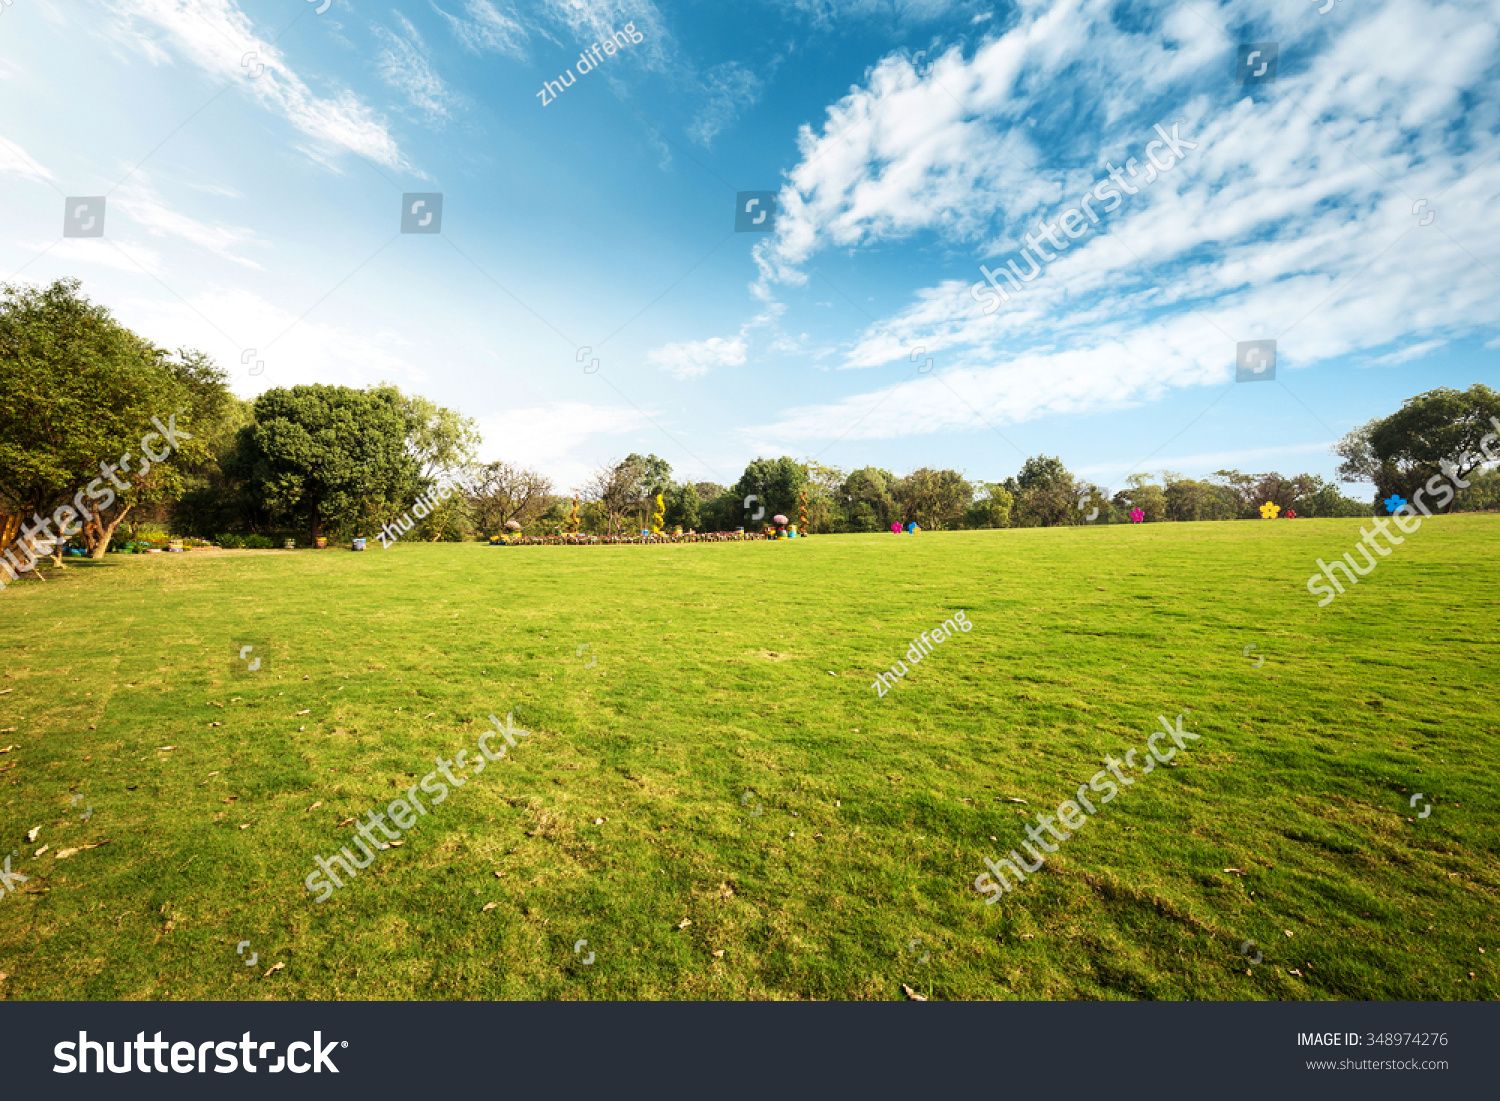 big meadow of city park in cloudy sky #348974276